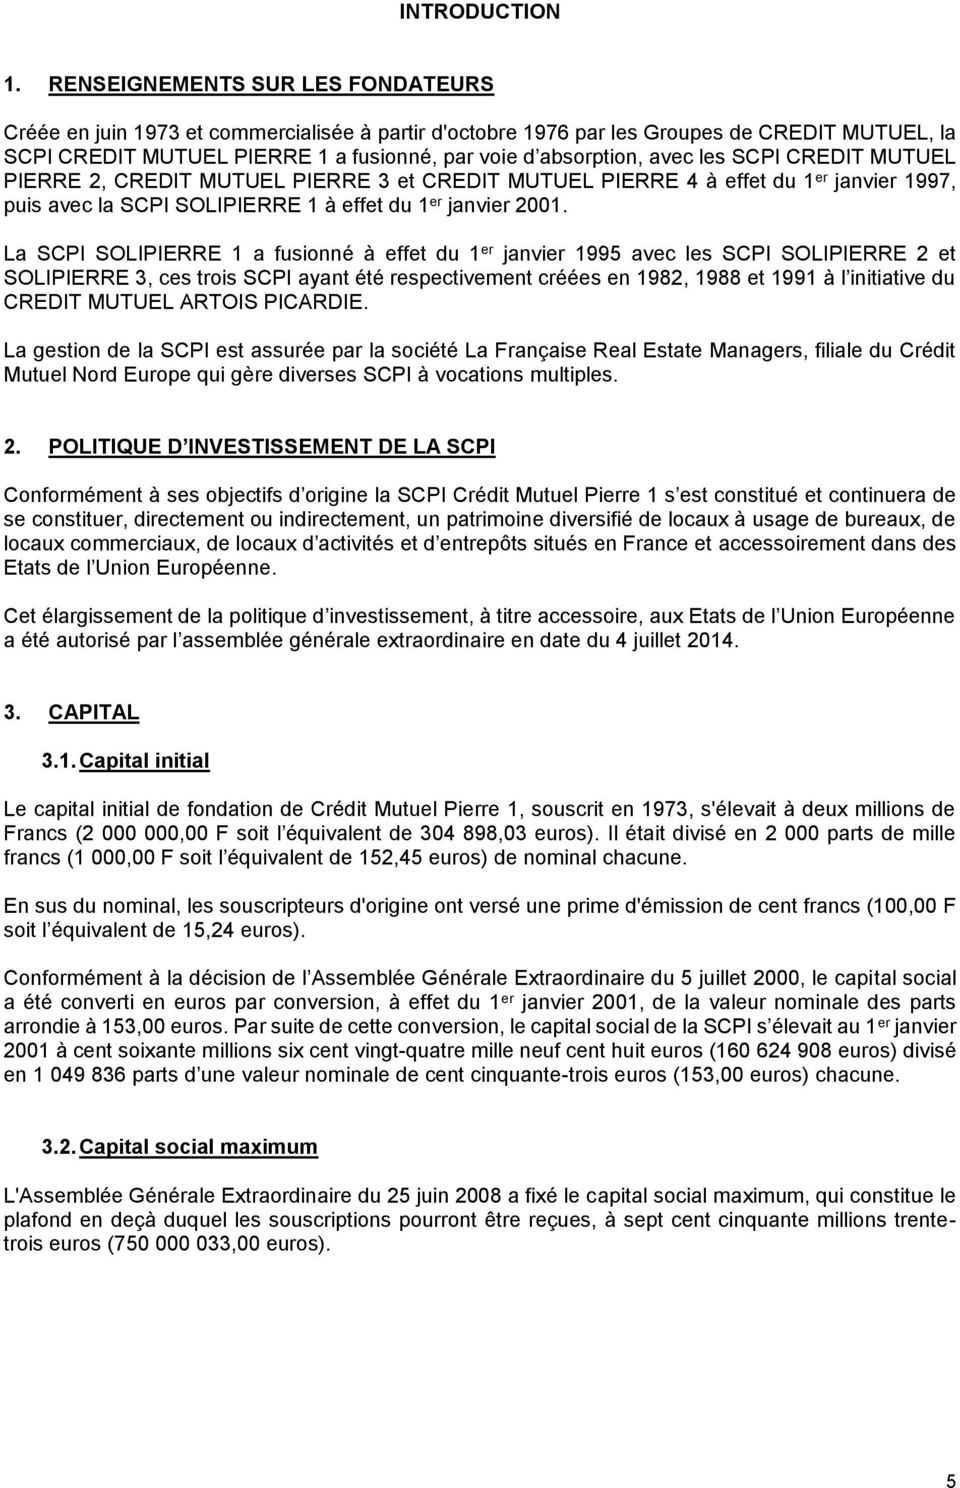 les SCPI CREDIT MUTUEL PIERRE 2, CREDIT MUTUEL PIERRE 3 et CREDIT MUTUEL PIERRE 4 à effet du 1 er janvier 1997, puis avec la SCPI SOLIPIERRE 1 à effet du 1 er janvier 2001.